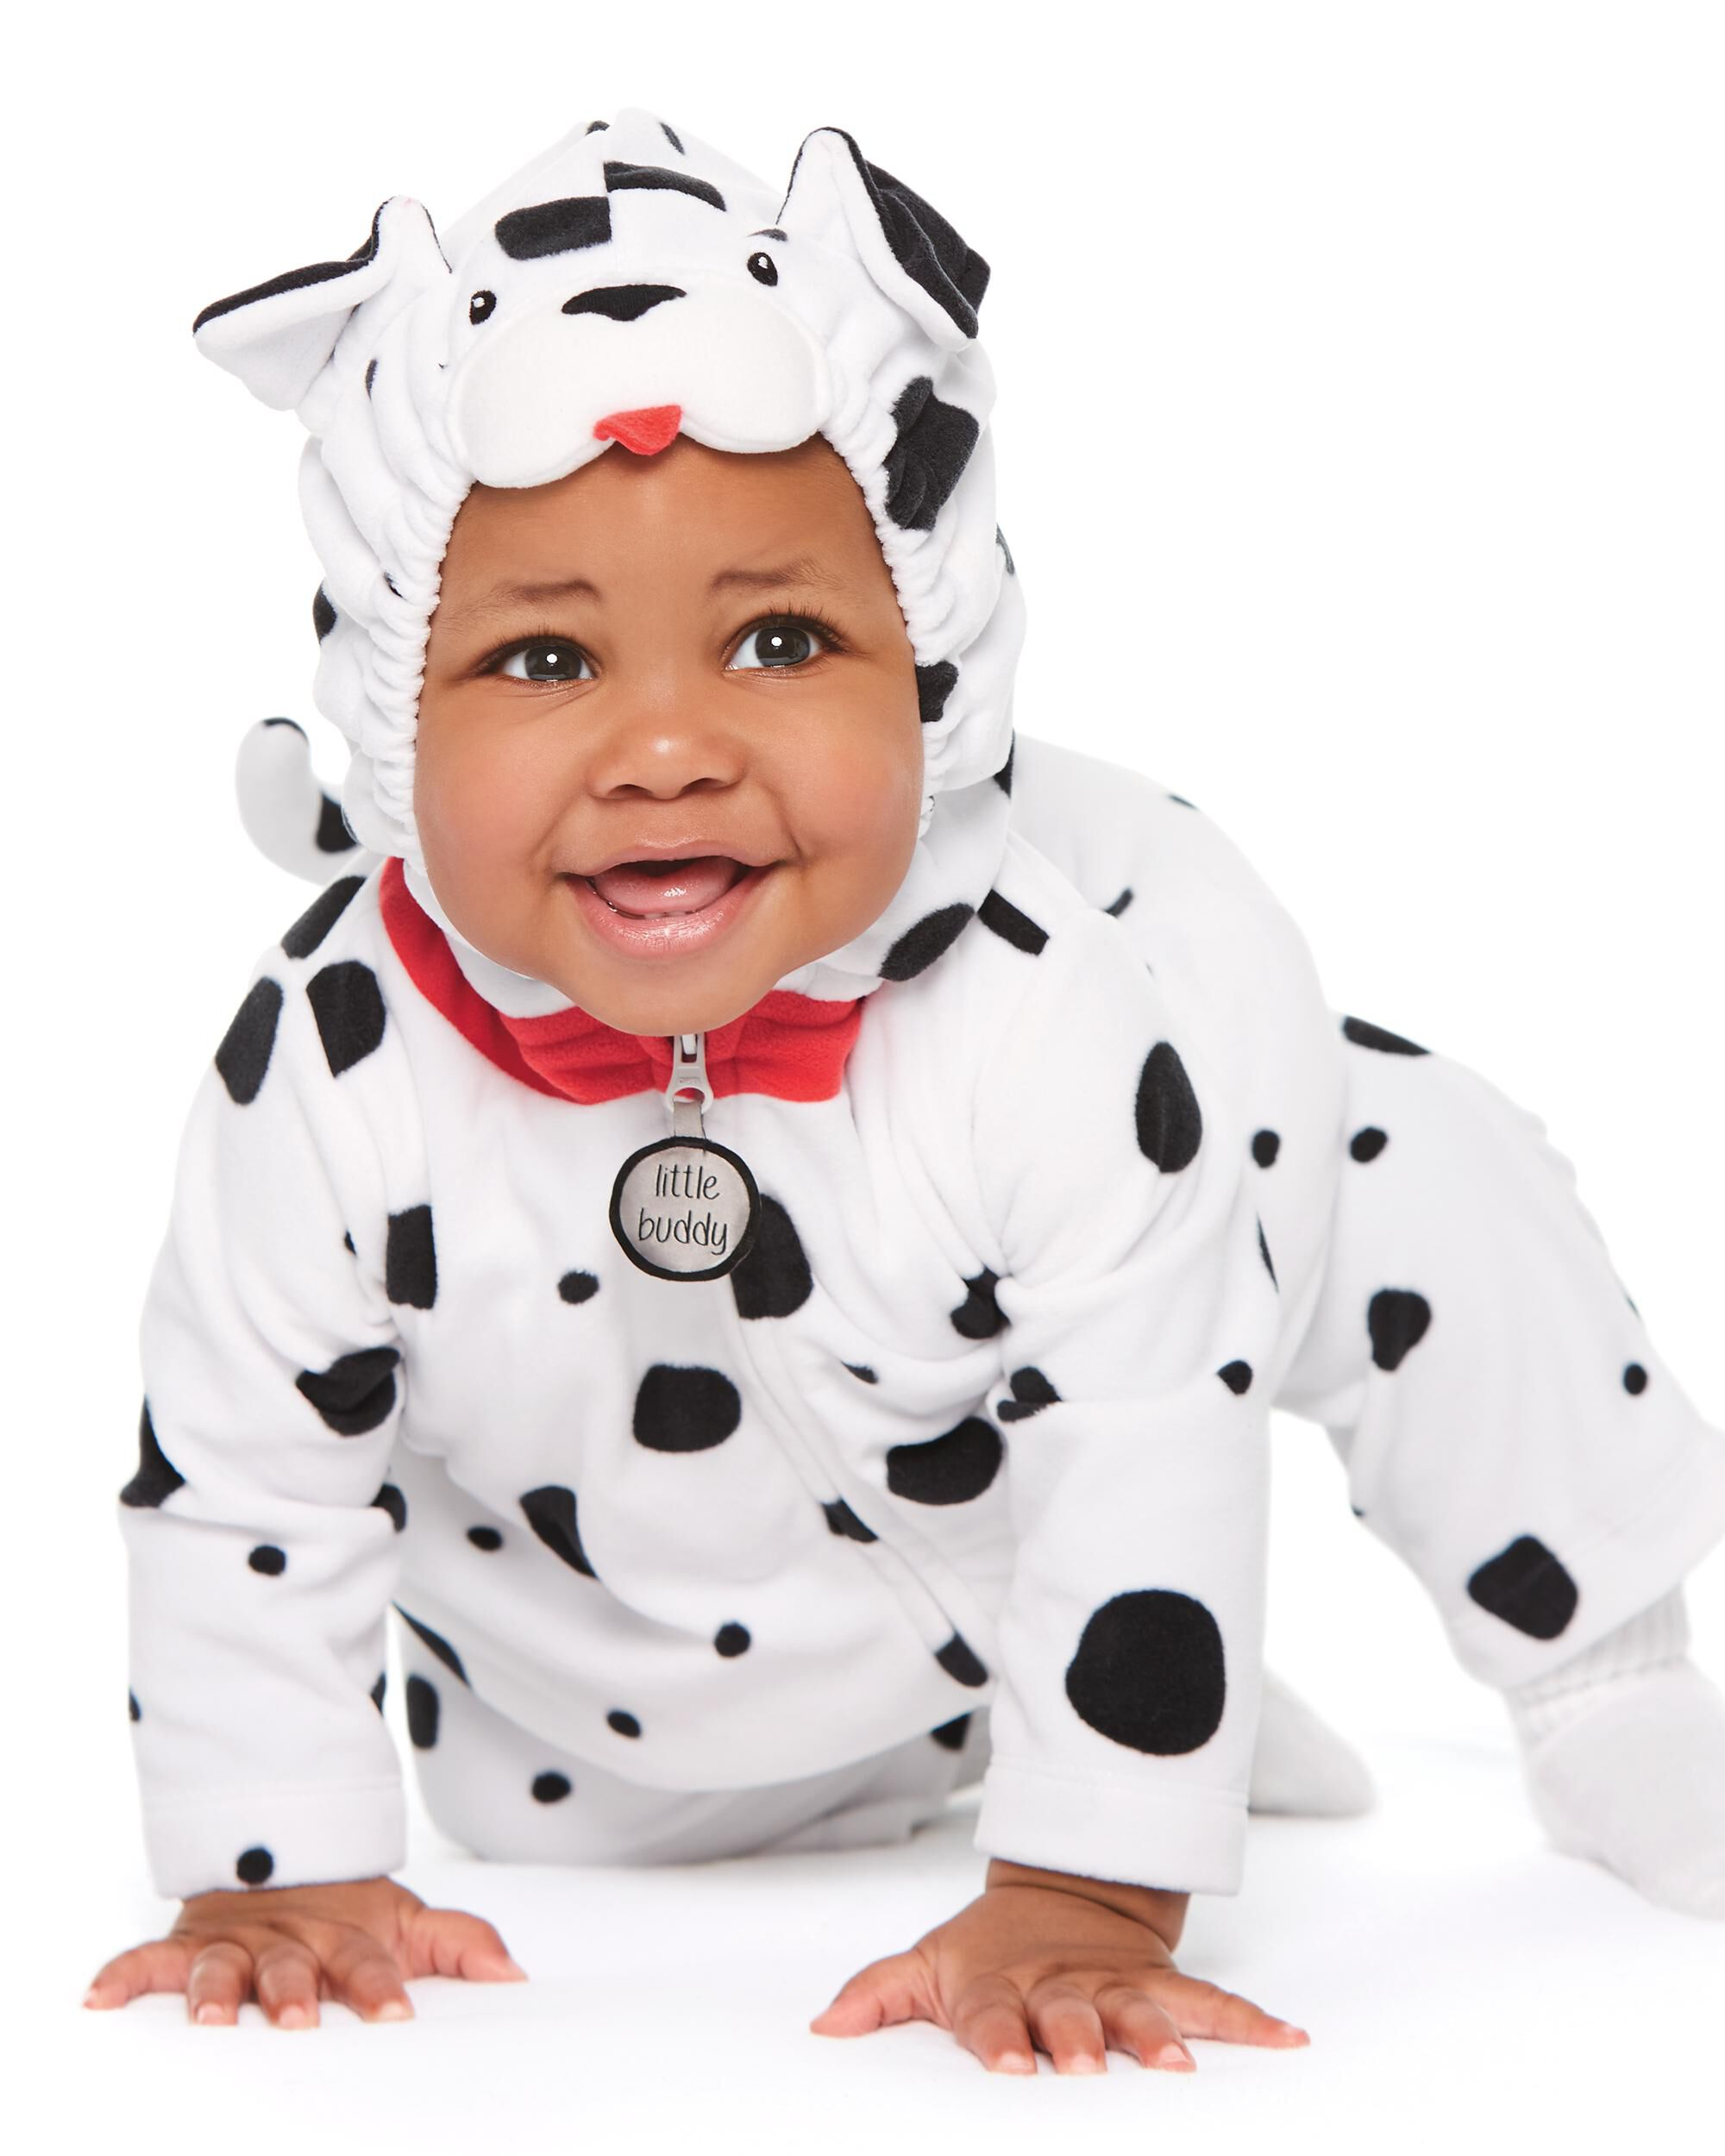 Little Dalmatian Halloween Costume ...  sc 1 st  Carteru0027s & Little Dalmatian Halloween Costume | Carters.com